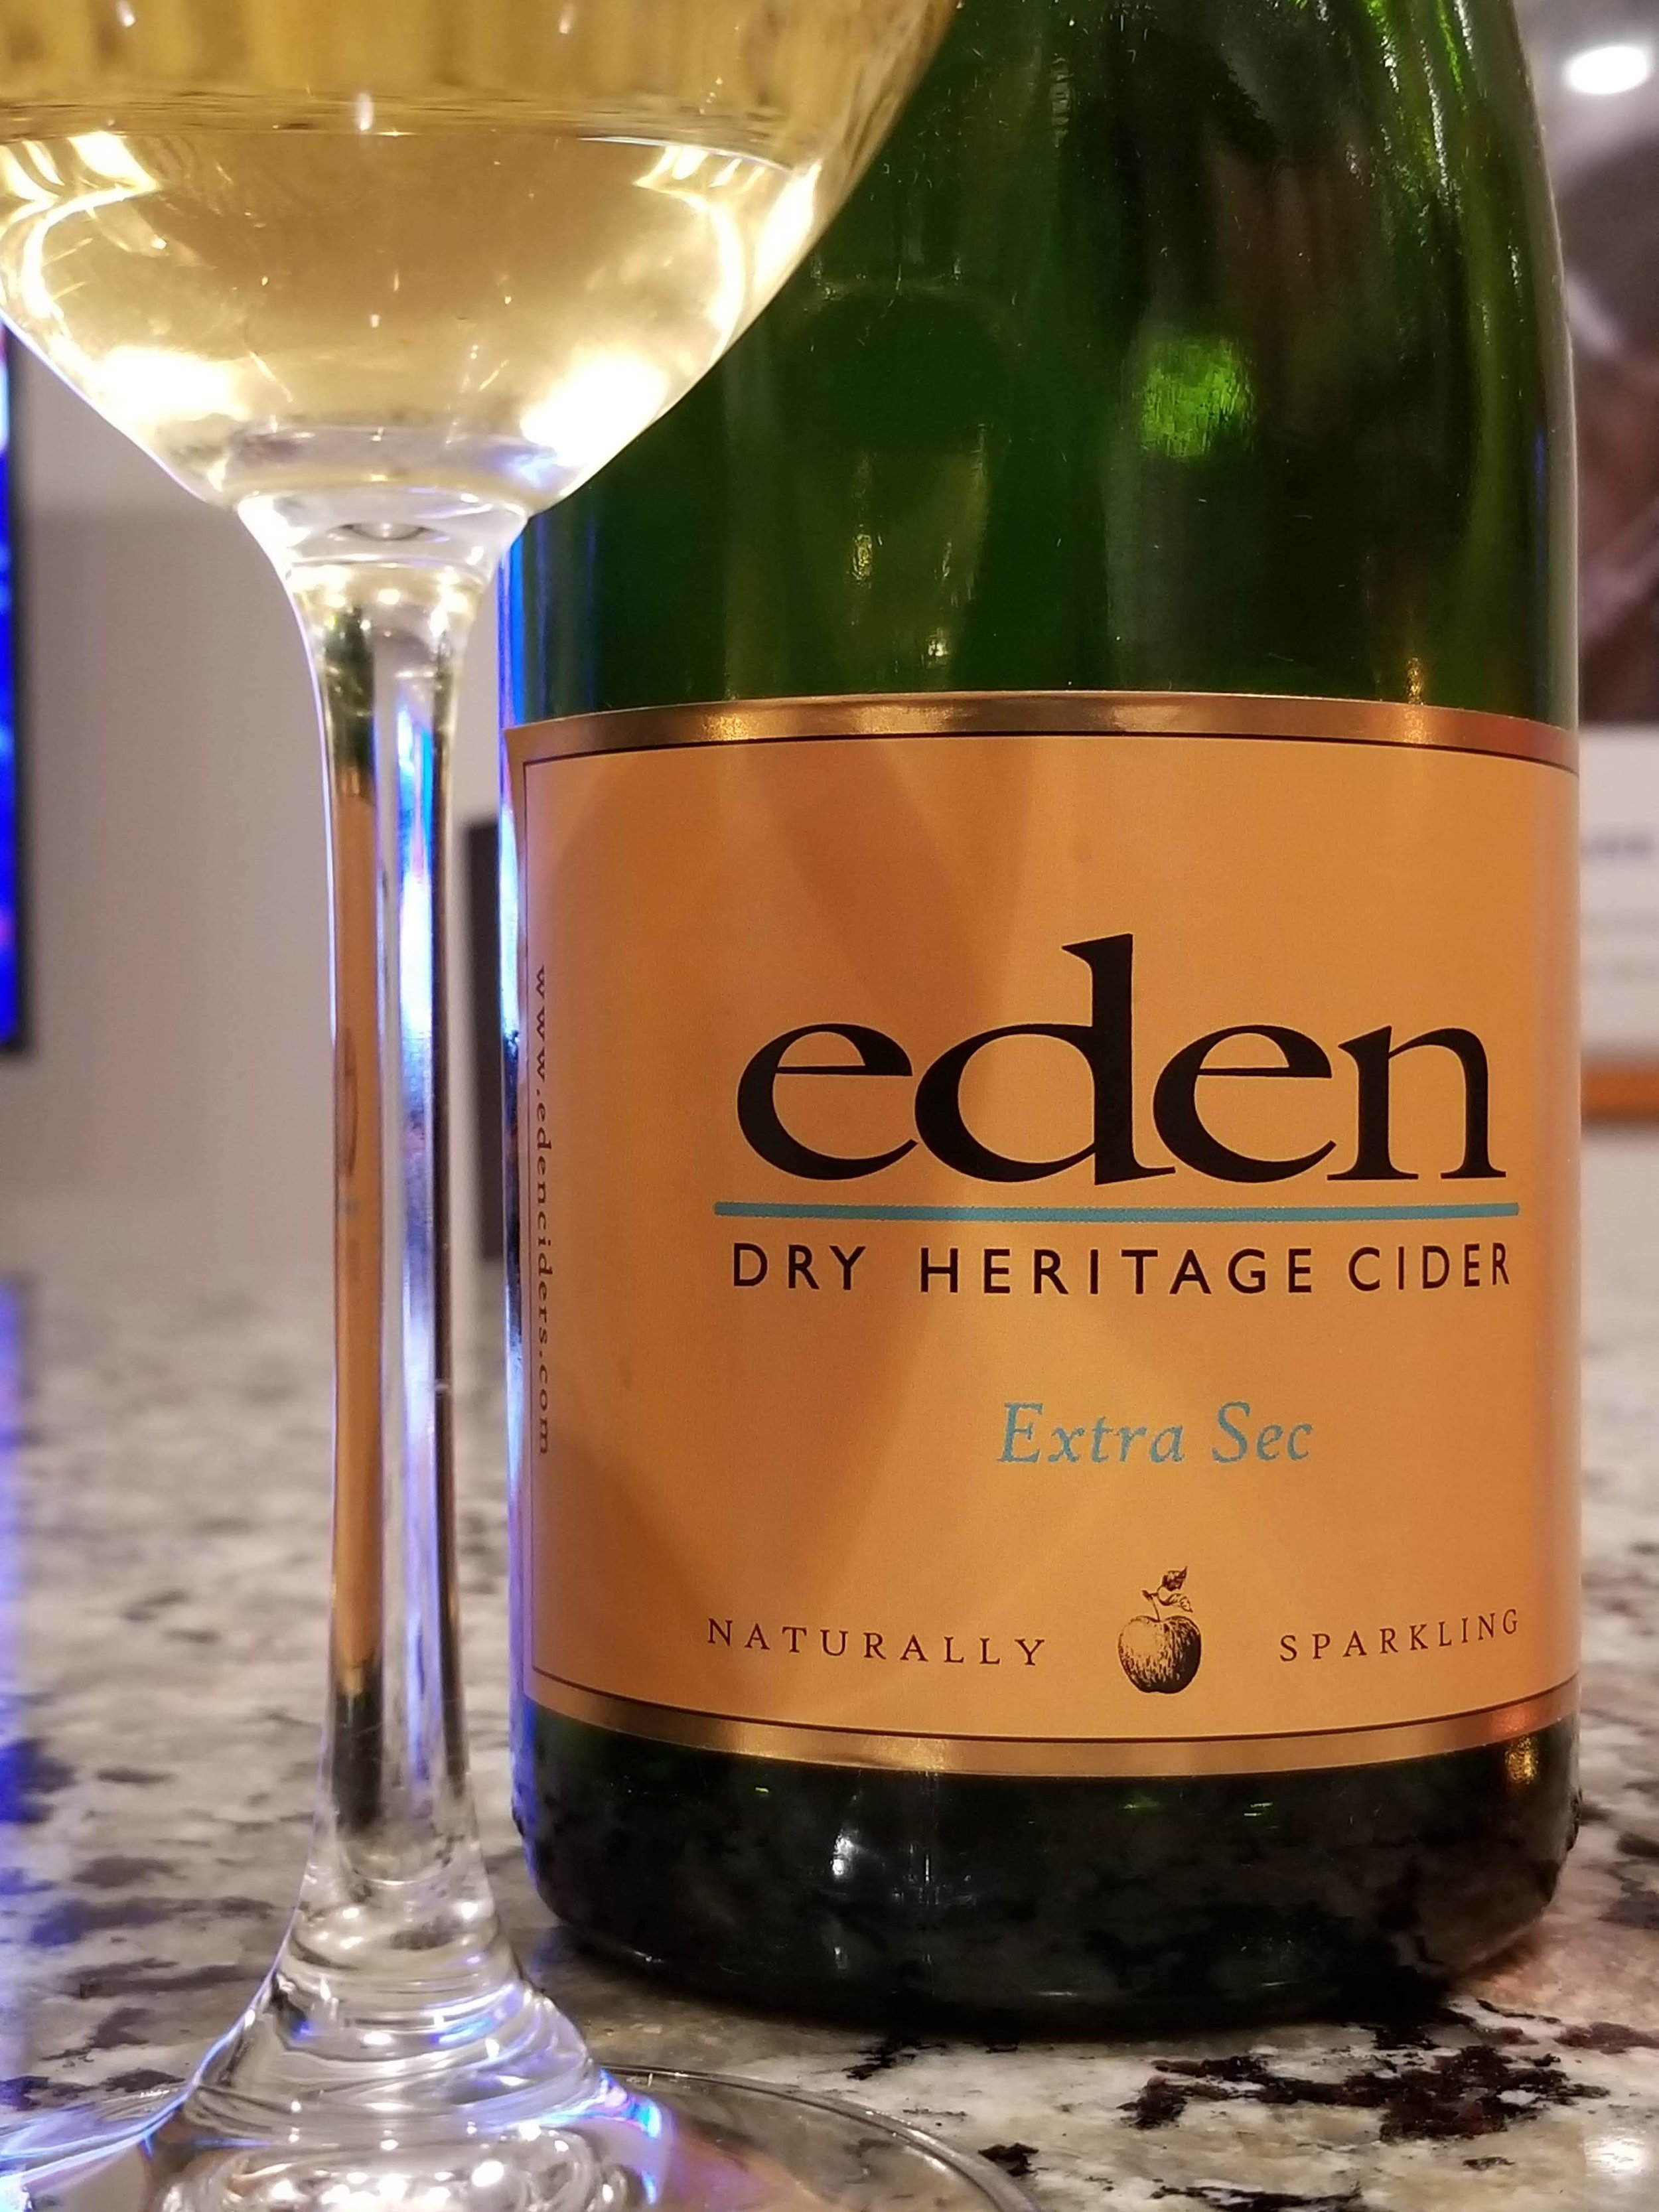 Extra Sec - Even though sec means dry, this cider has a nice sweetness. A beautiful fruit forward body with spices. I paired this cider with pad Thai and homemade Pho. This is a nice welcome cider for a dinner party. A true crowd pleaser.